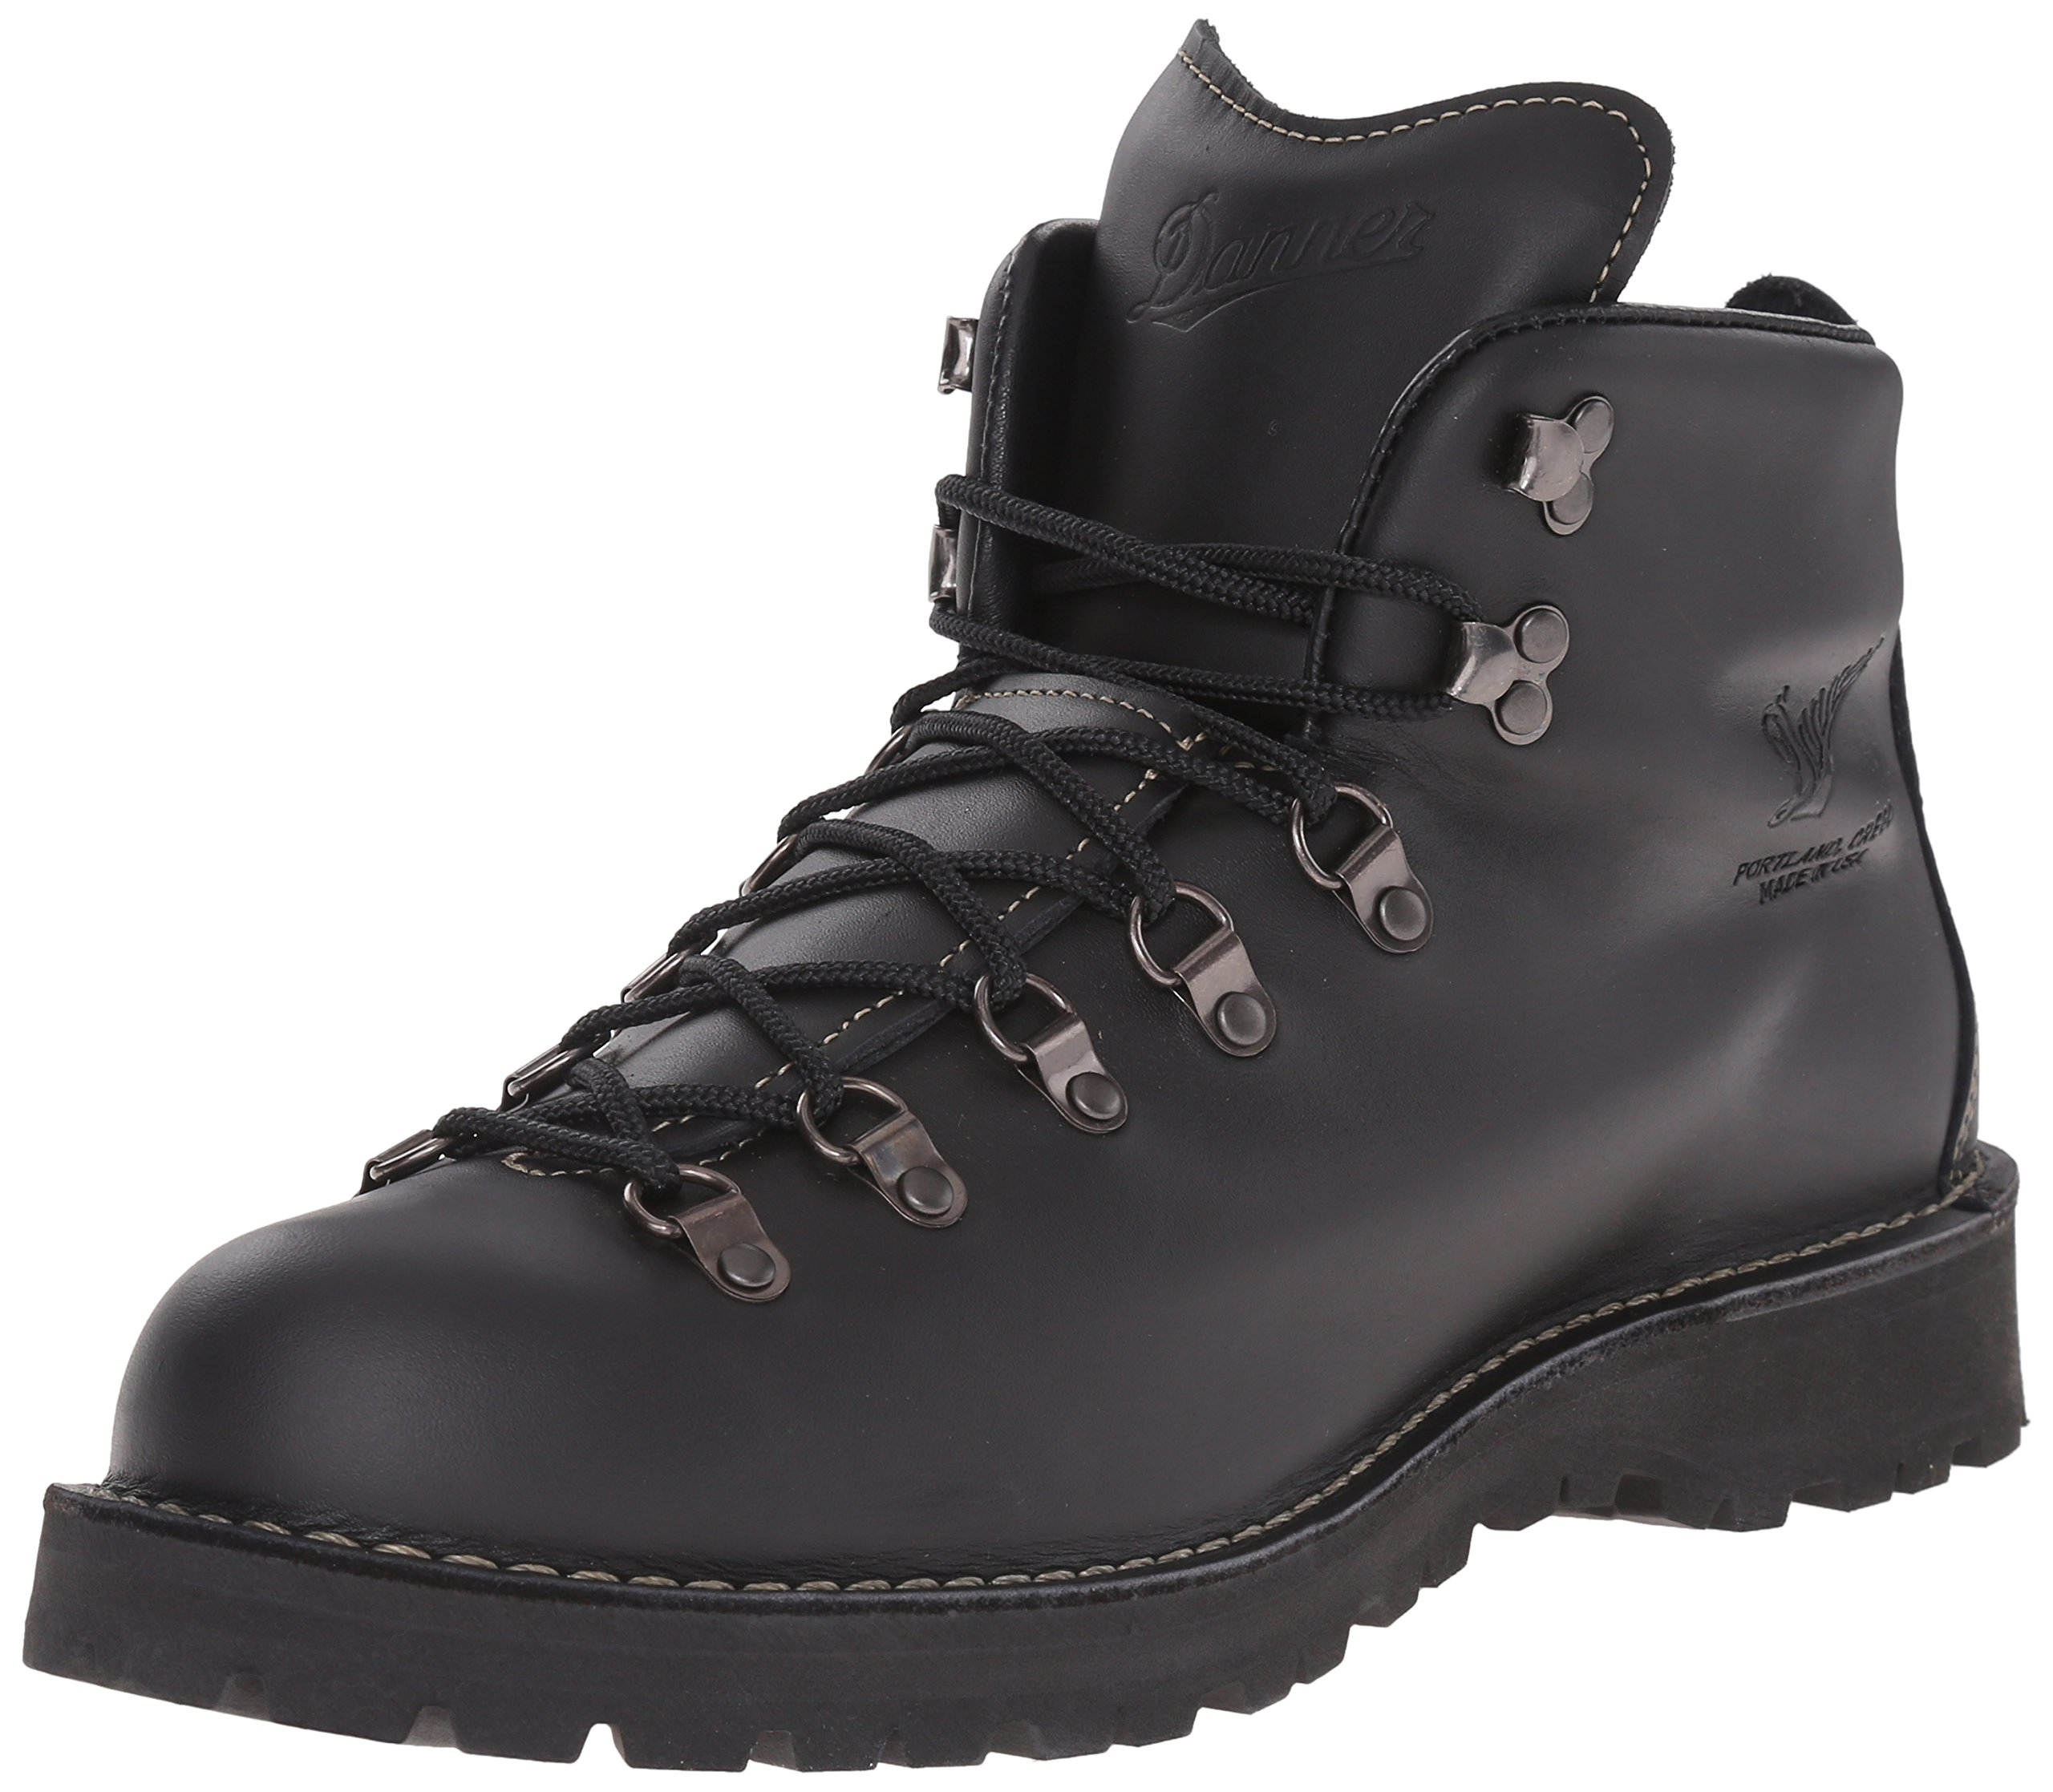 Danner Men's Mountain Light II Hiking Boot,Black,10 D US